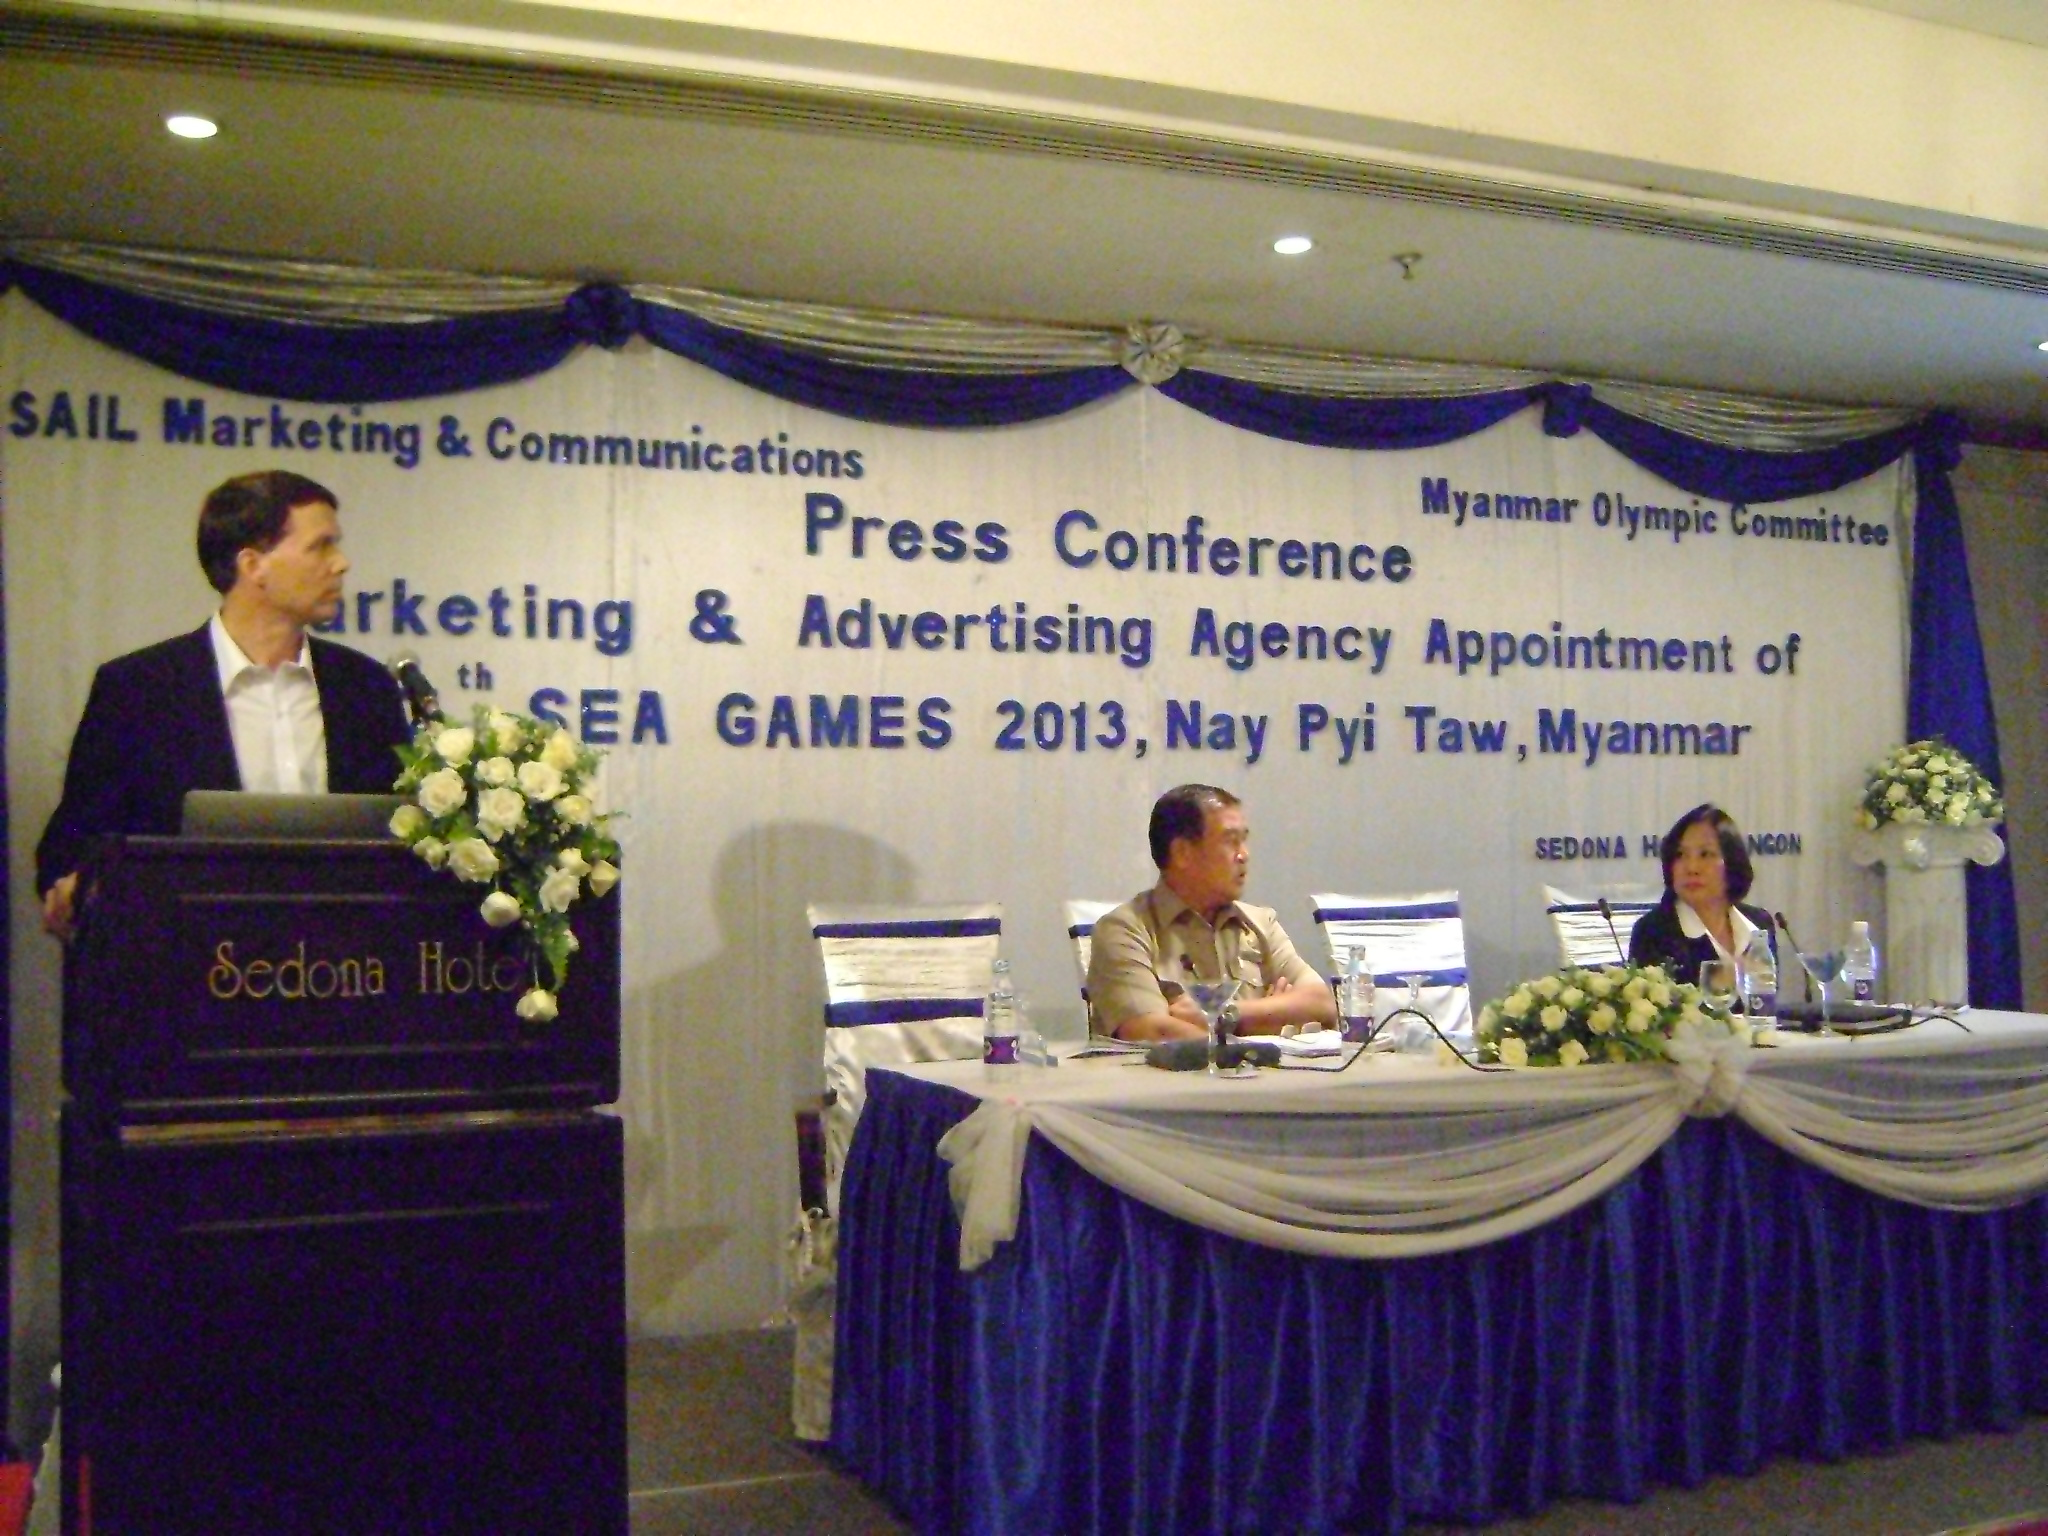 SAIL CEO Mr. John Handley Presents SEA Games Sponsorship Approach With U Thaung Htike Centre And Dr. Khin Khin Kyawt Right Looking On During A July 7th Press Conference In Yangon